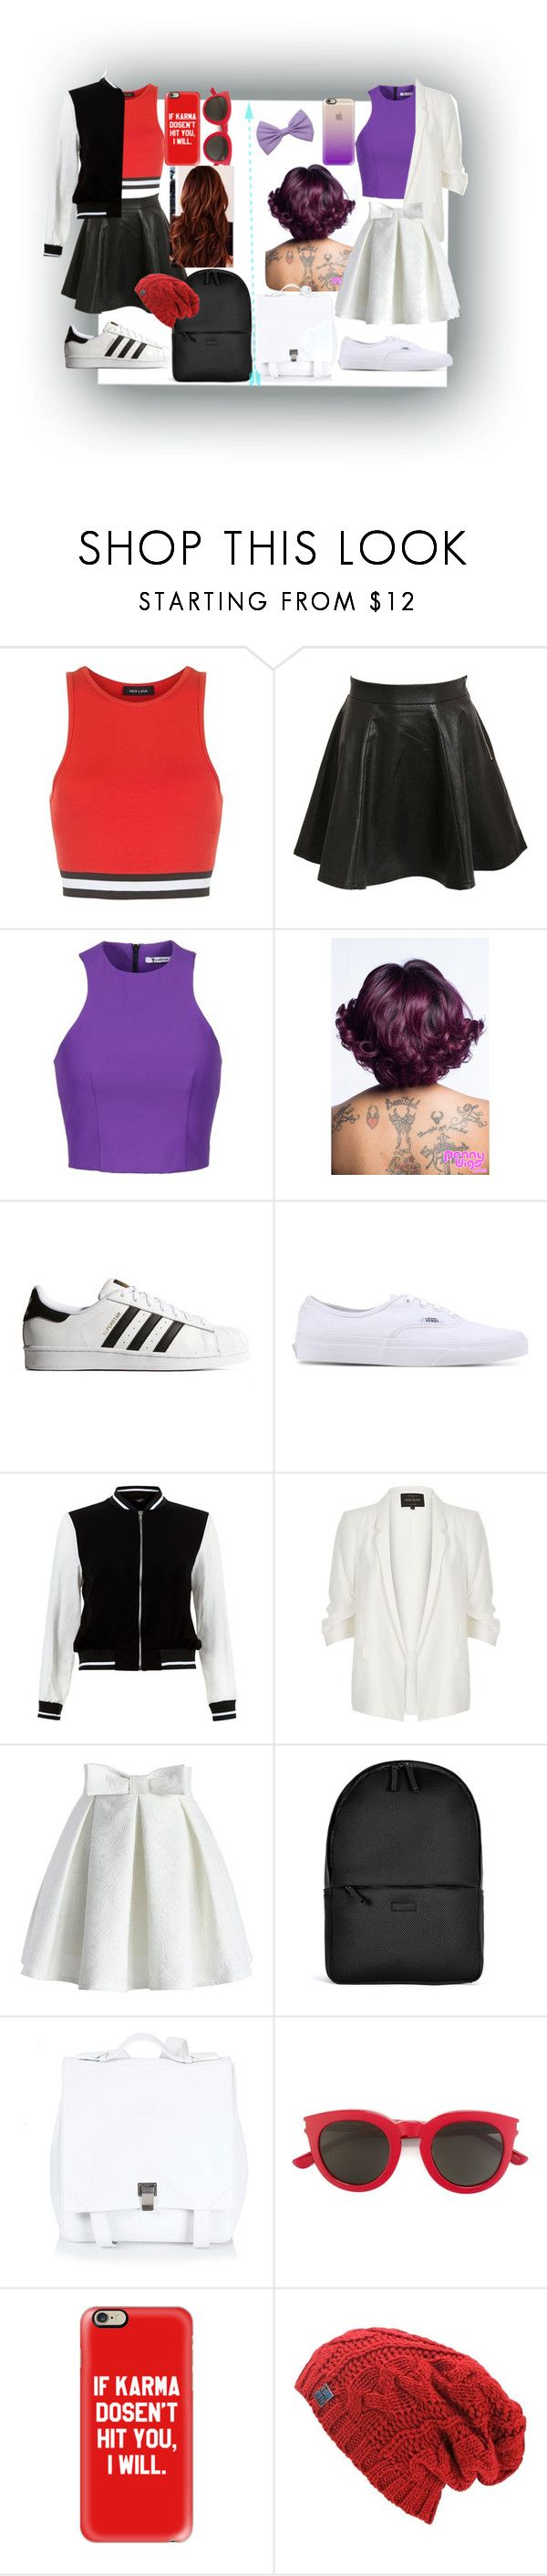 """""""Me(Red and black) & Aree (Purple and white)!!"""" by septicplier64 ❤ liked on Polyvore featuring New Look, Pilot, T By Alexander Wang, adidas Originals, Vans, River Island, Chicwish, Rains, Proenza Schouler and Yves Saint Laurent"""